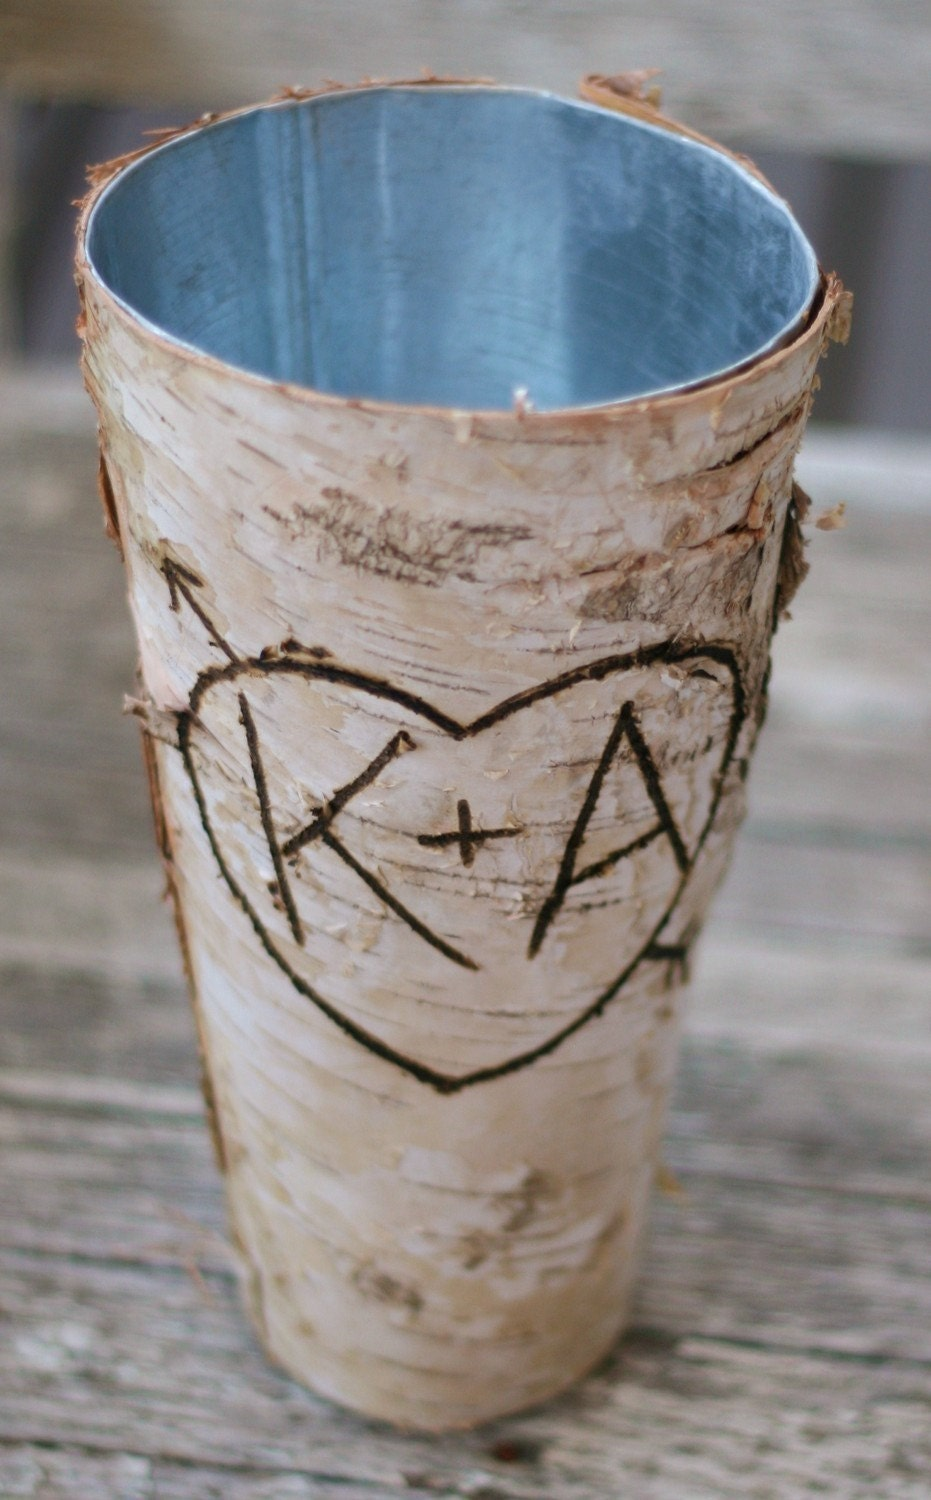 Personalized birch wood vase house decor item by braggingbags